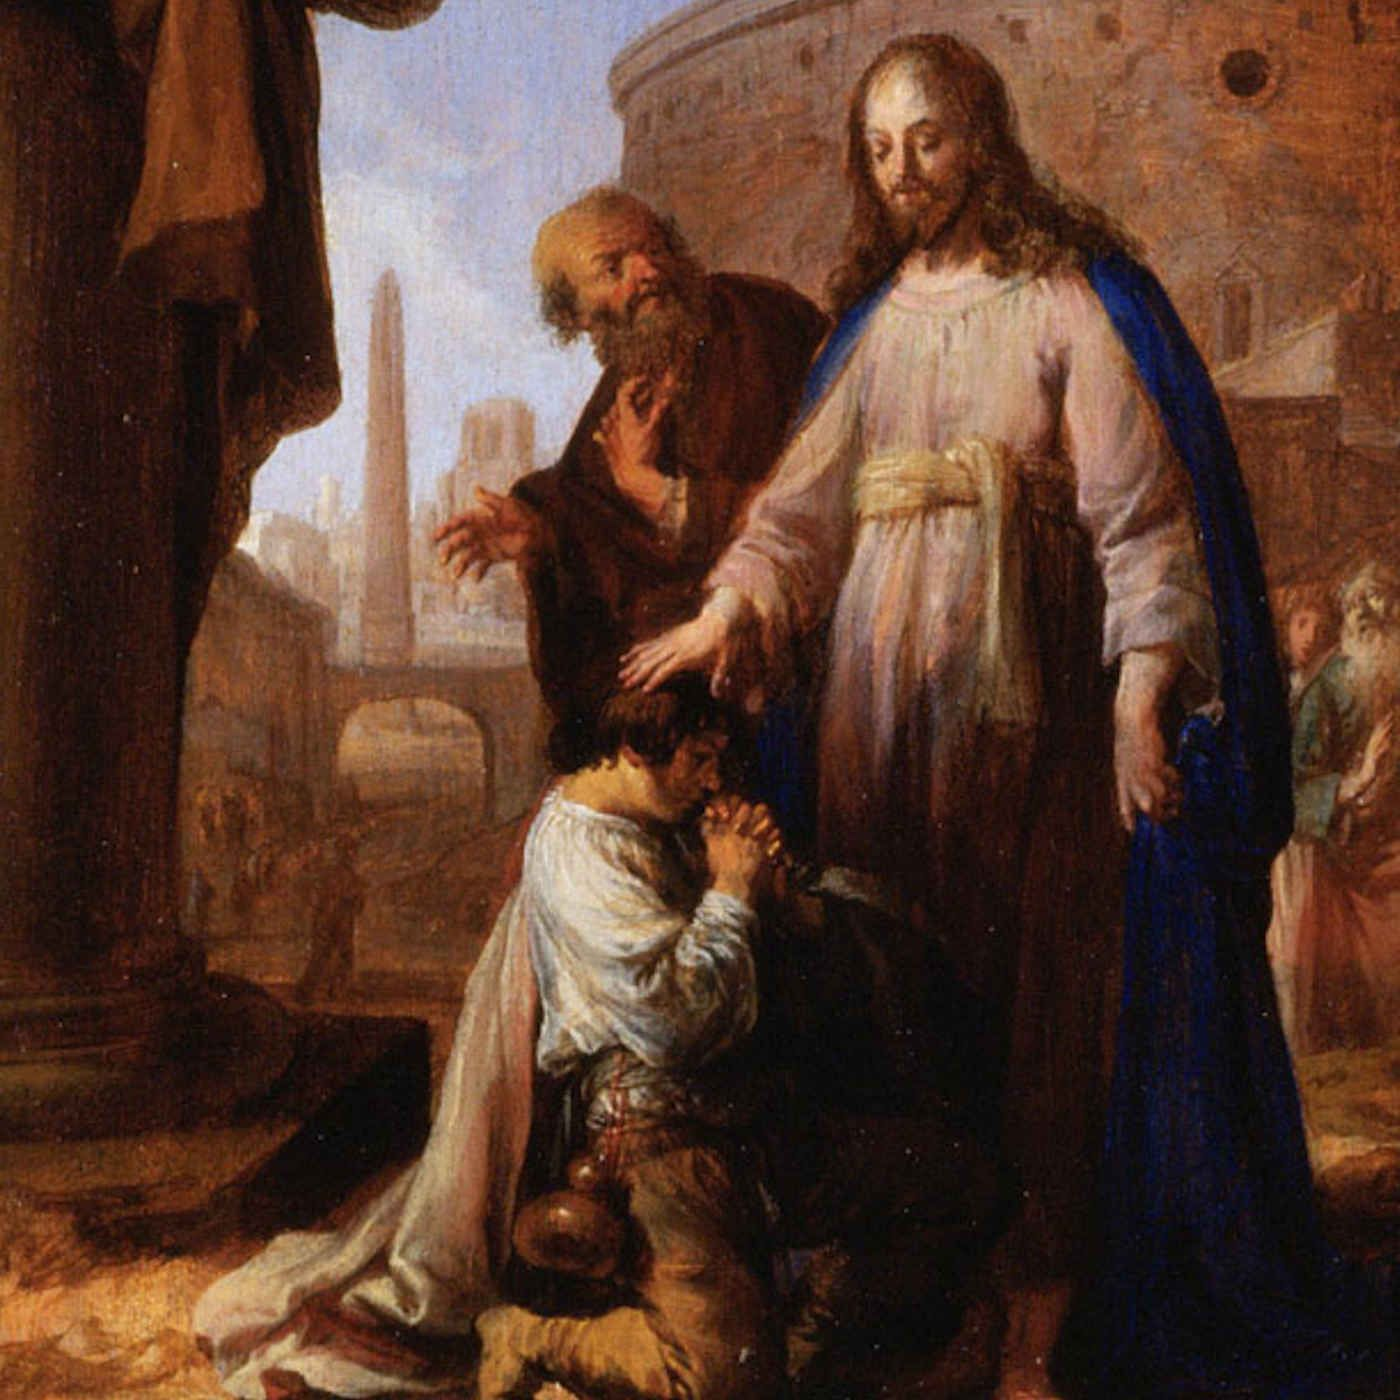 Twenty-Eighth Sunday in Ordinary Time, Year B - Beyond Good Intentions